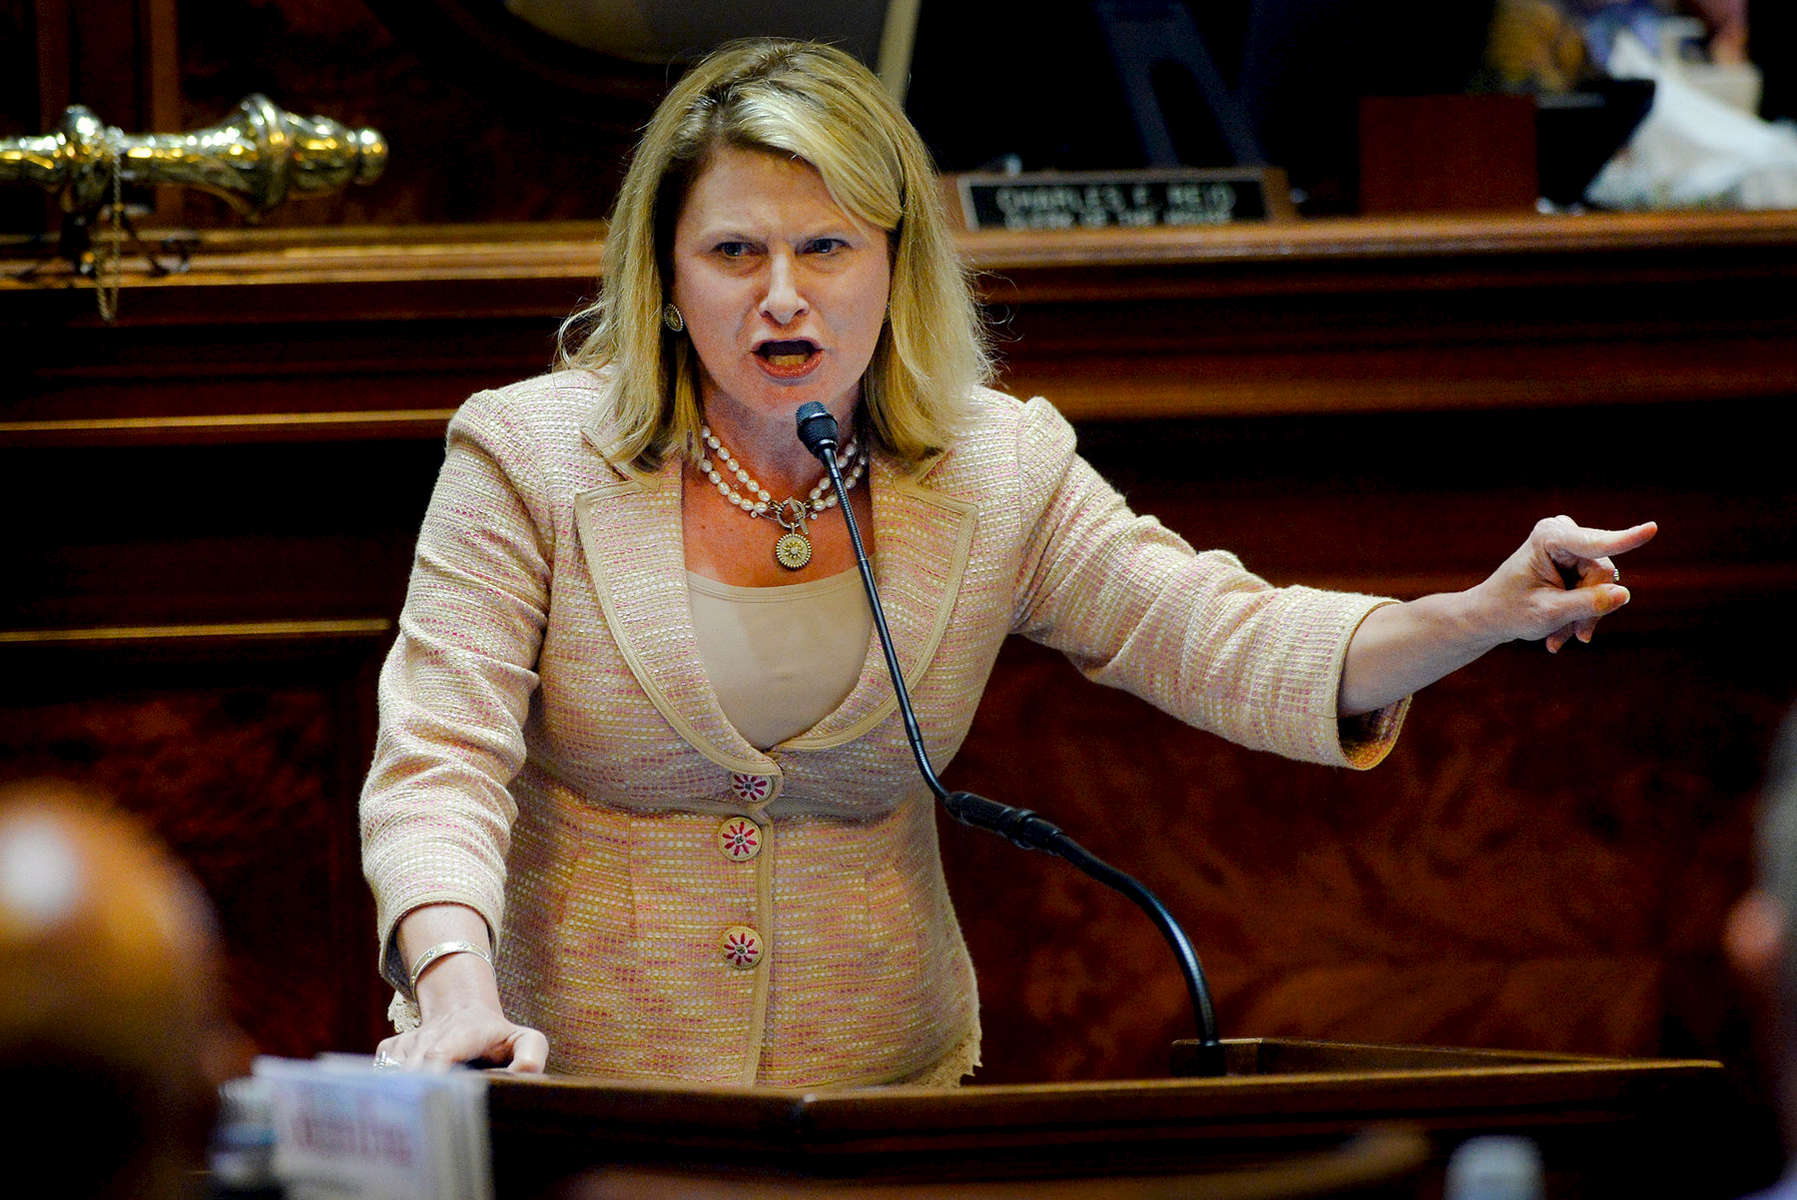 First Place | Multiple PhotosMykal McEldowney, The Greenville NewsRep. Jenny Horne gives an emotional testimony in favor of removing the Confederate flag from Statehouse grounds on Wednesday, July 8, 2015. {quote}If you don't remove that flag you are telling the people of Charleston that you don't care about them,{quote} Horne said.